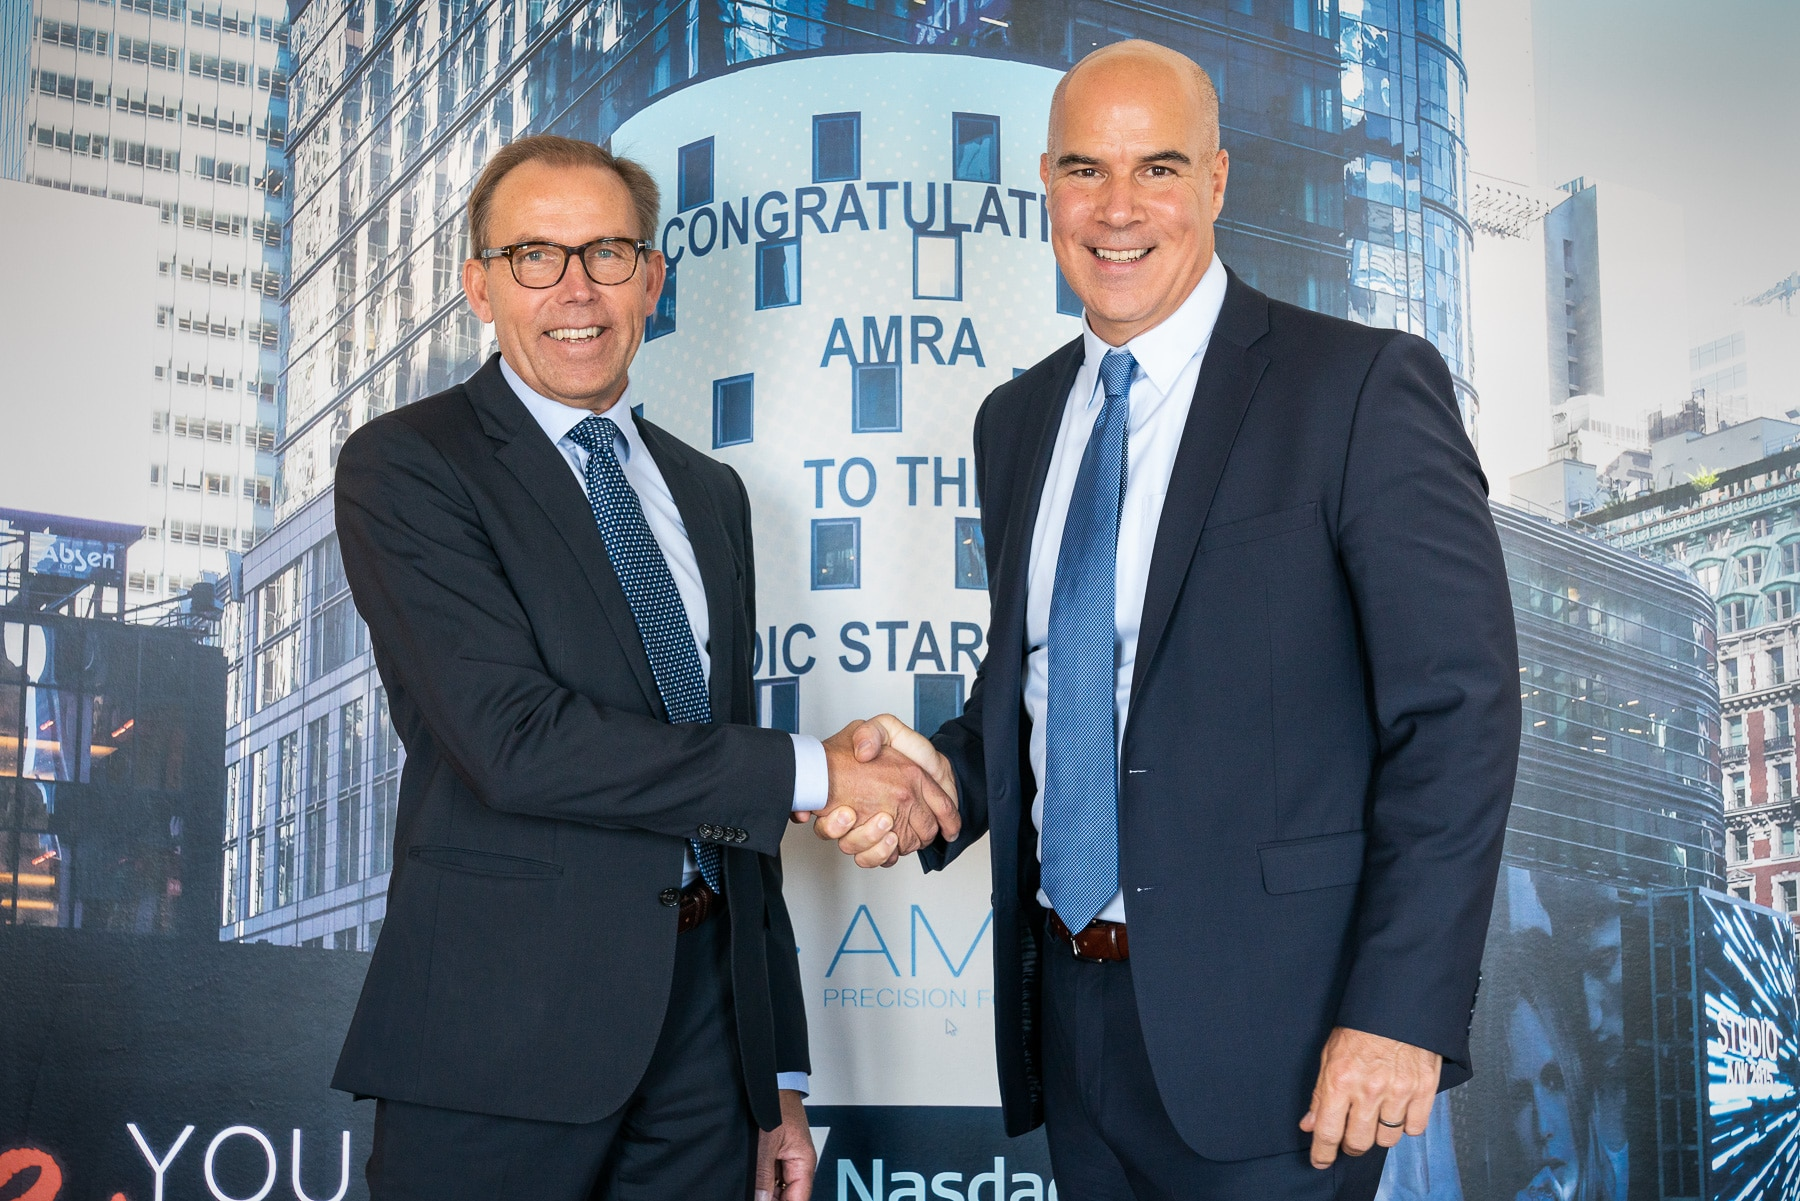 AMRA Appoints Eric Converse as CEO